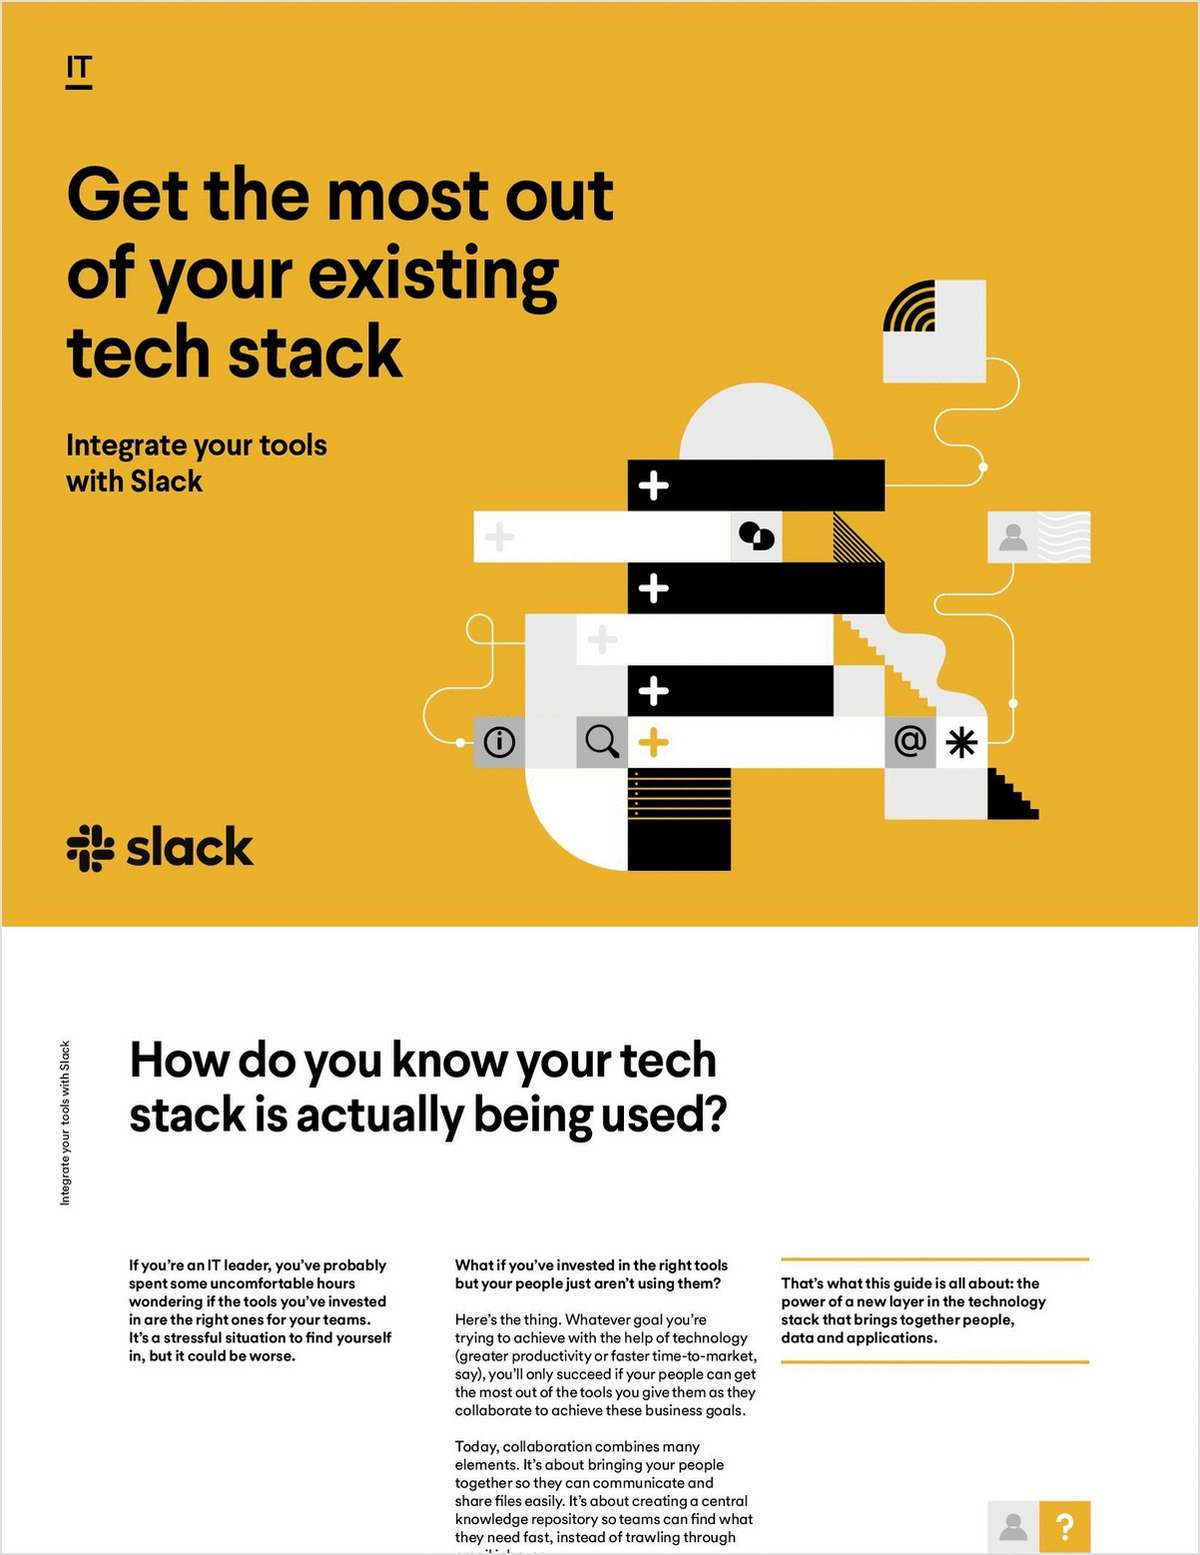 Get the most out of your existing tech stack